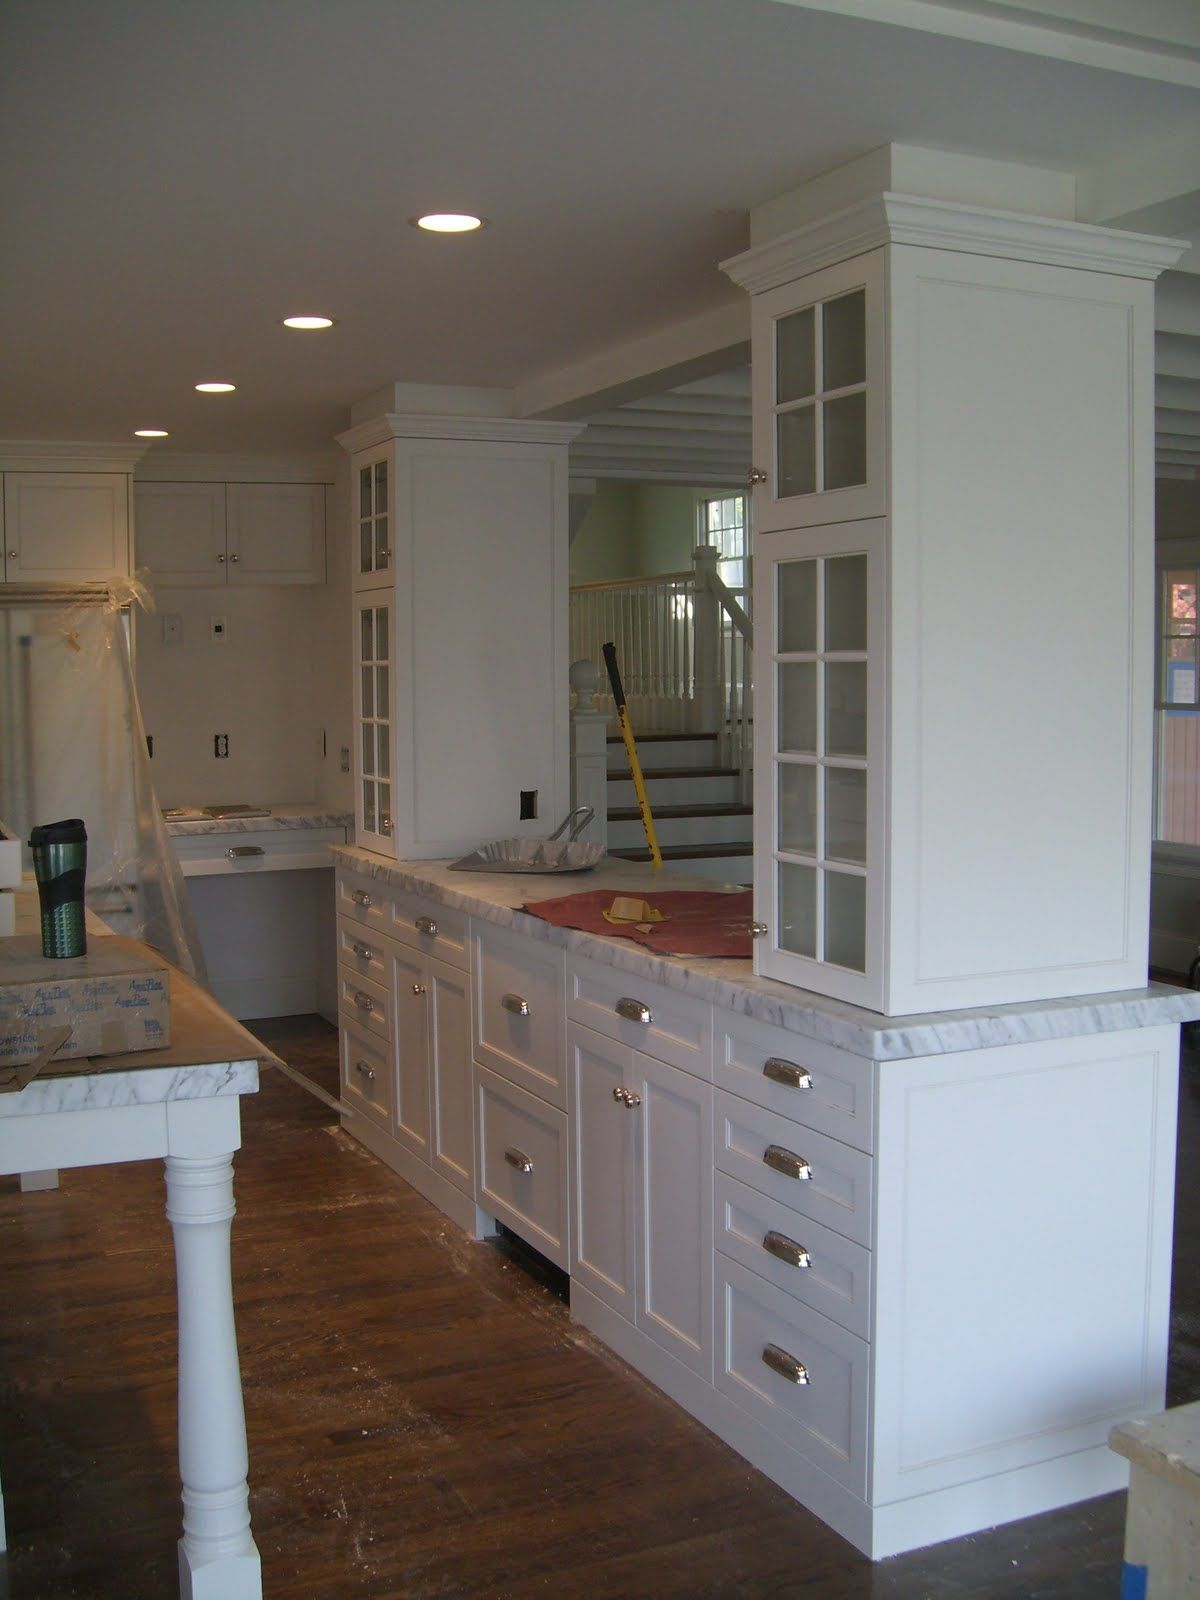 Wall Kitchen Image Result For Kitchen Islands And Load Bearing Wall